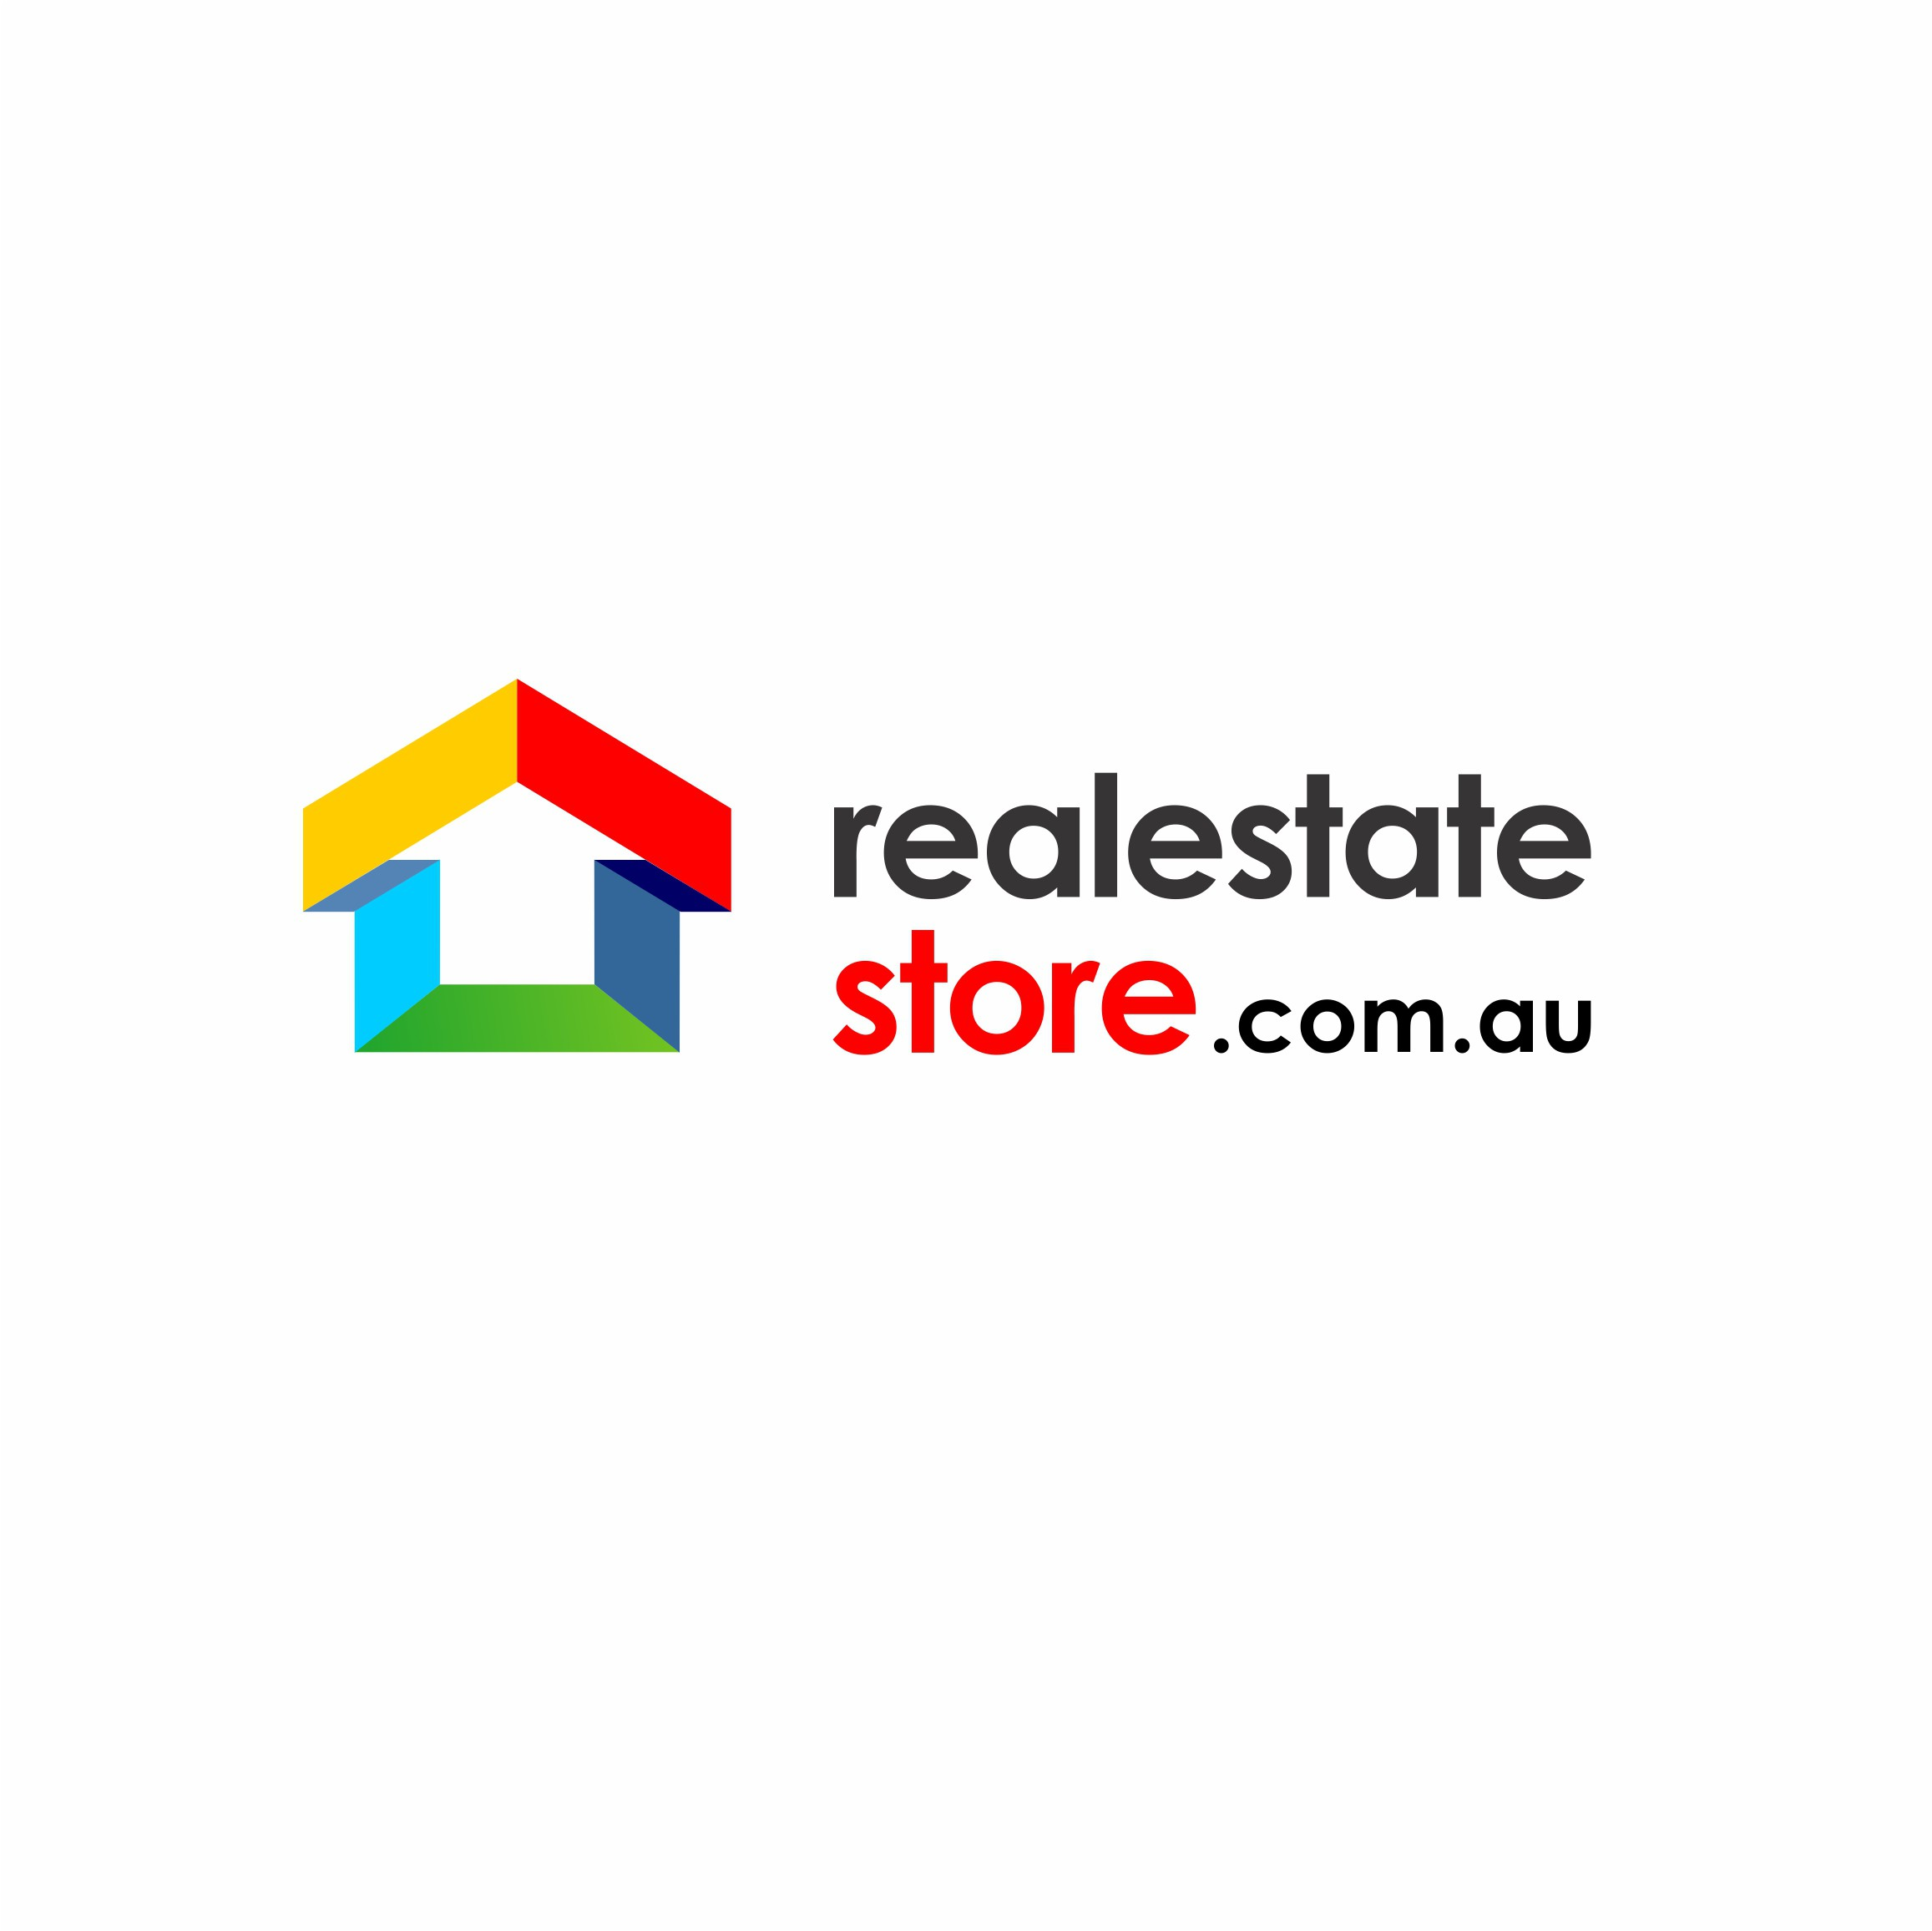 need a nice clean logo that lets people know its a realestate website. professional and happy feel